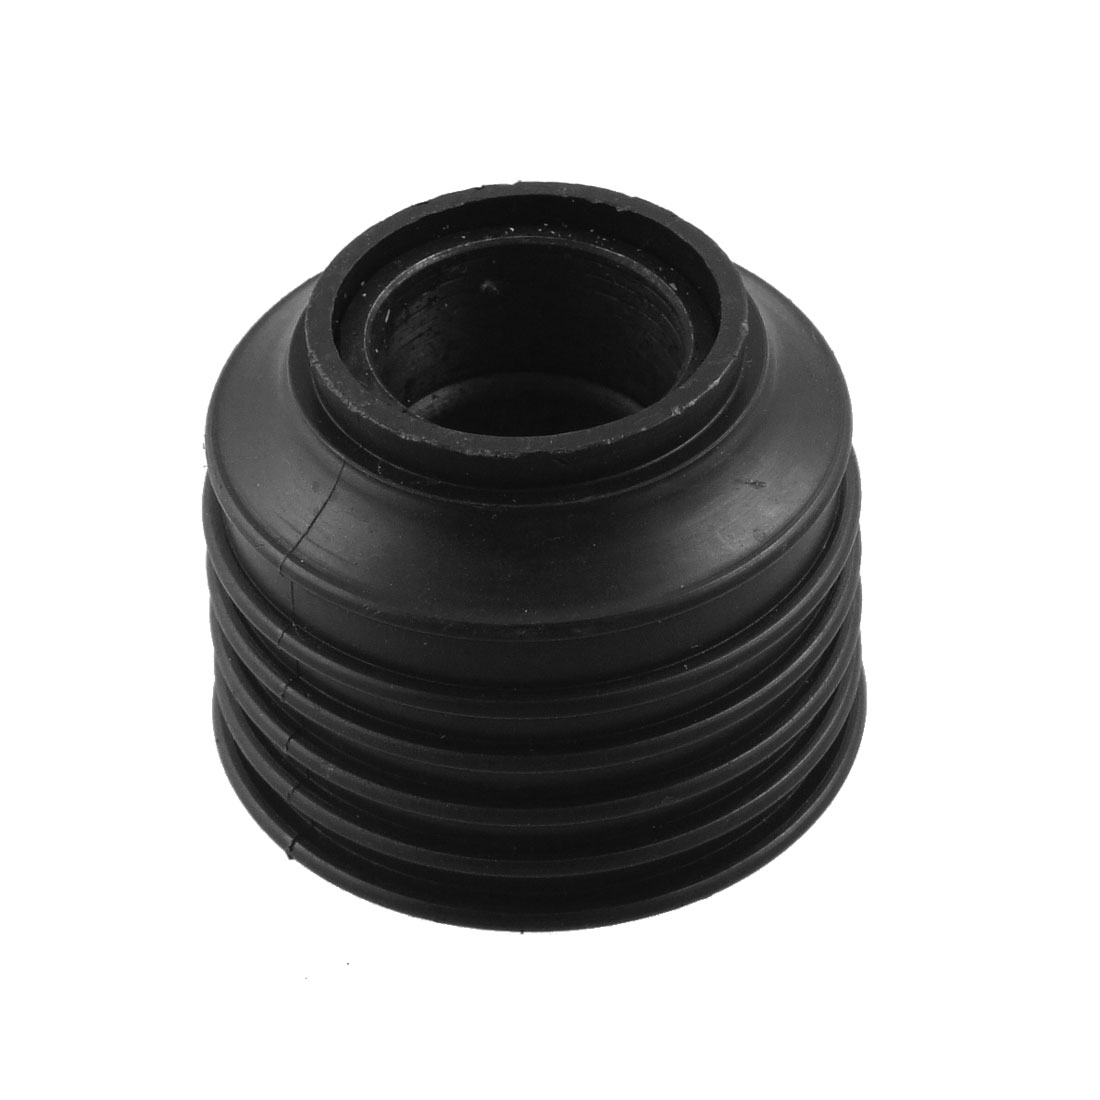 Electric Hammer Replacement Plastic Metal Ball Retainer for Bosch 26